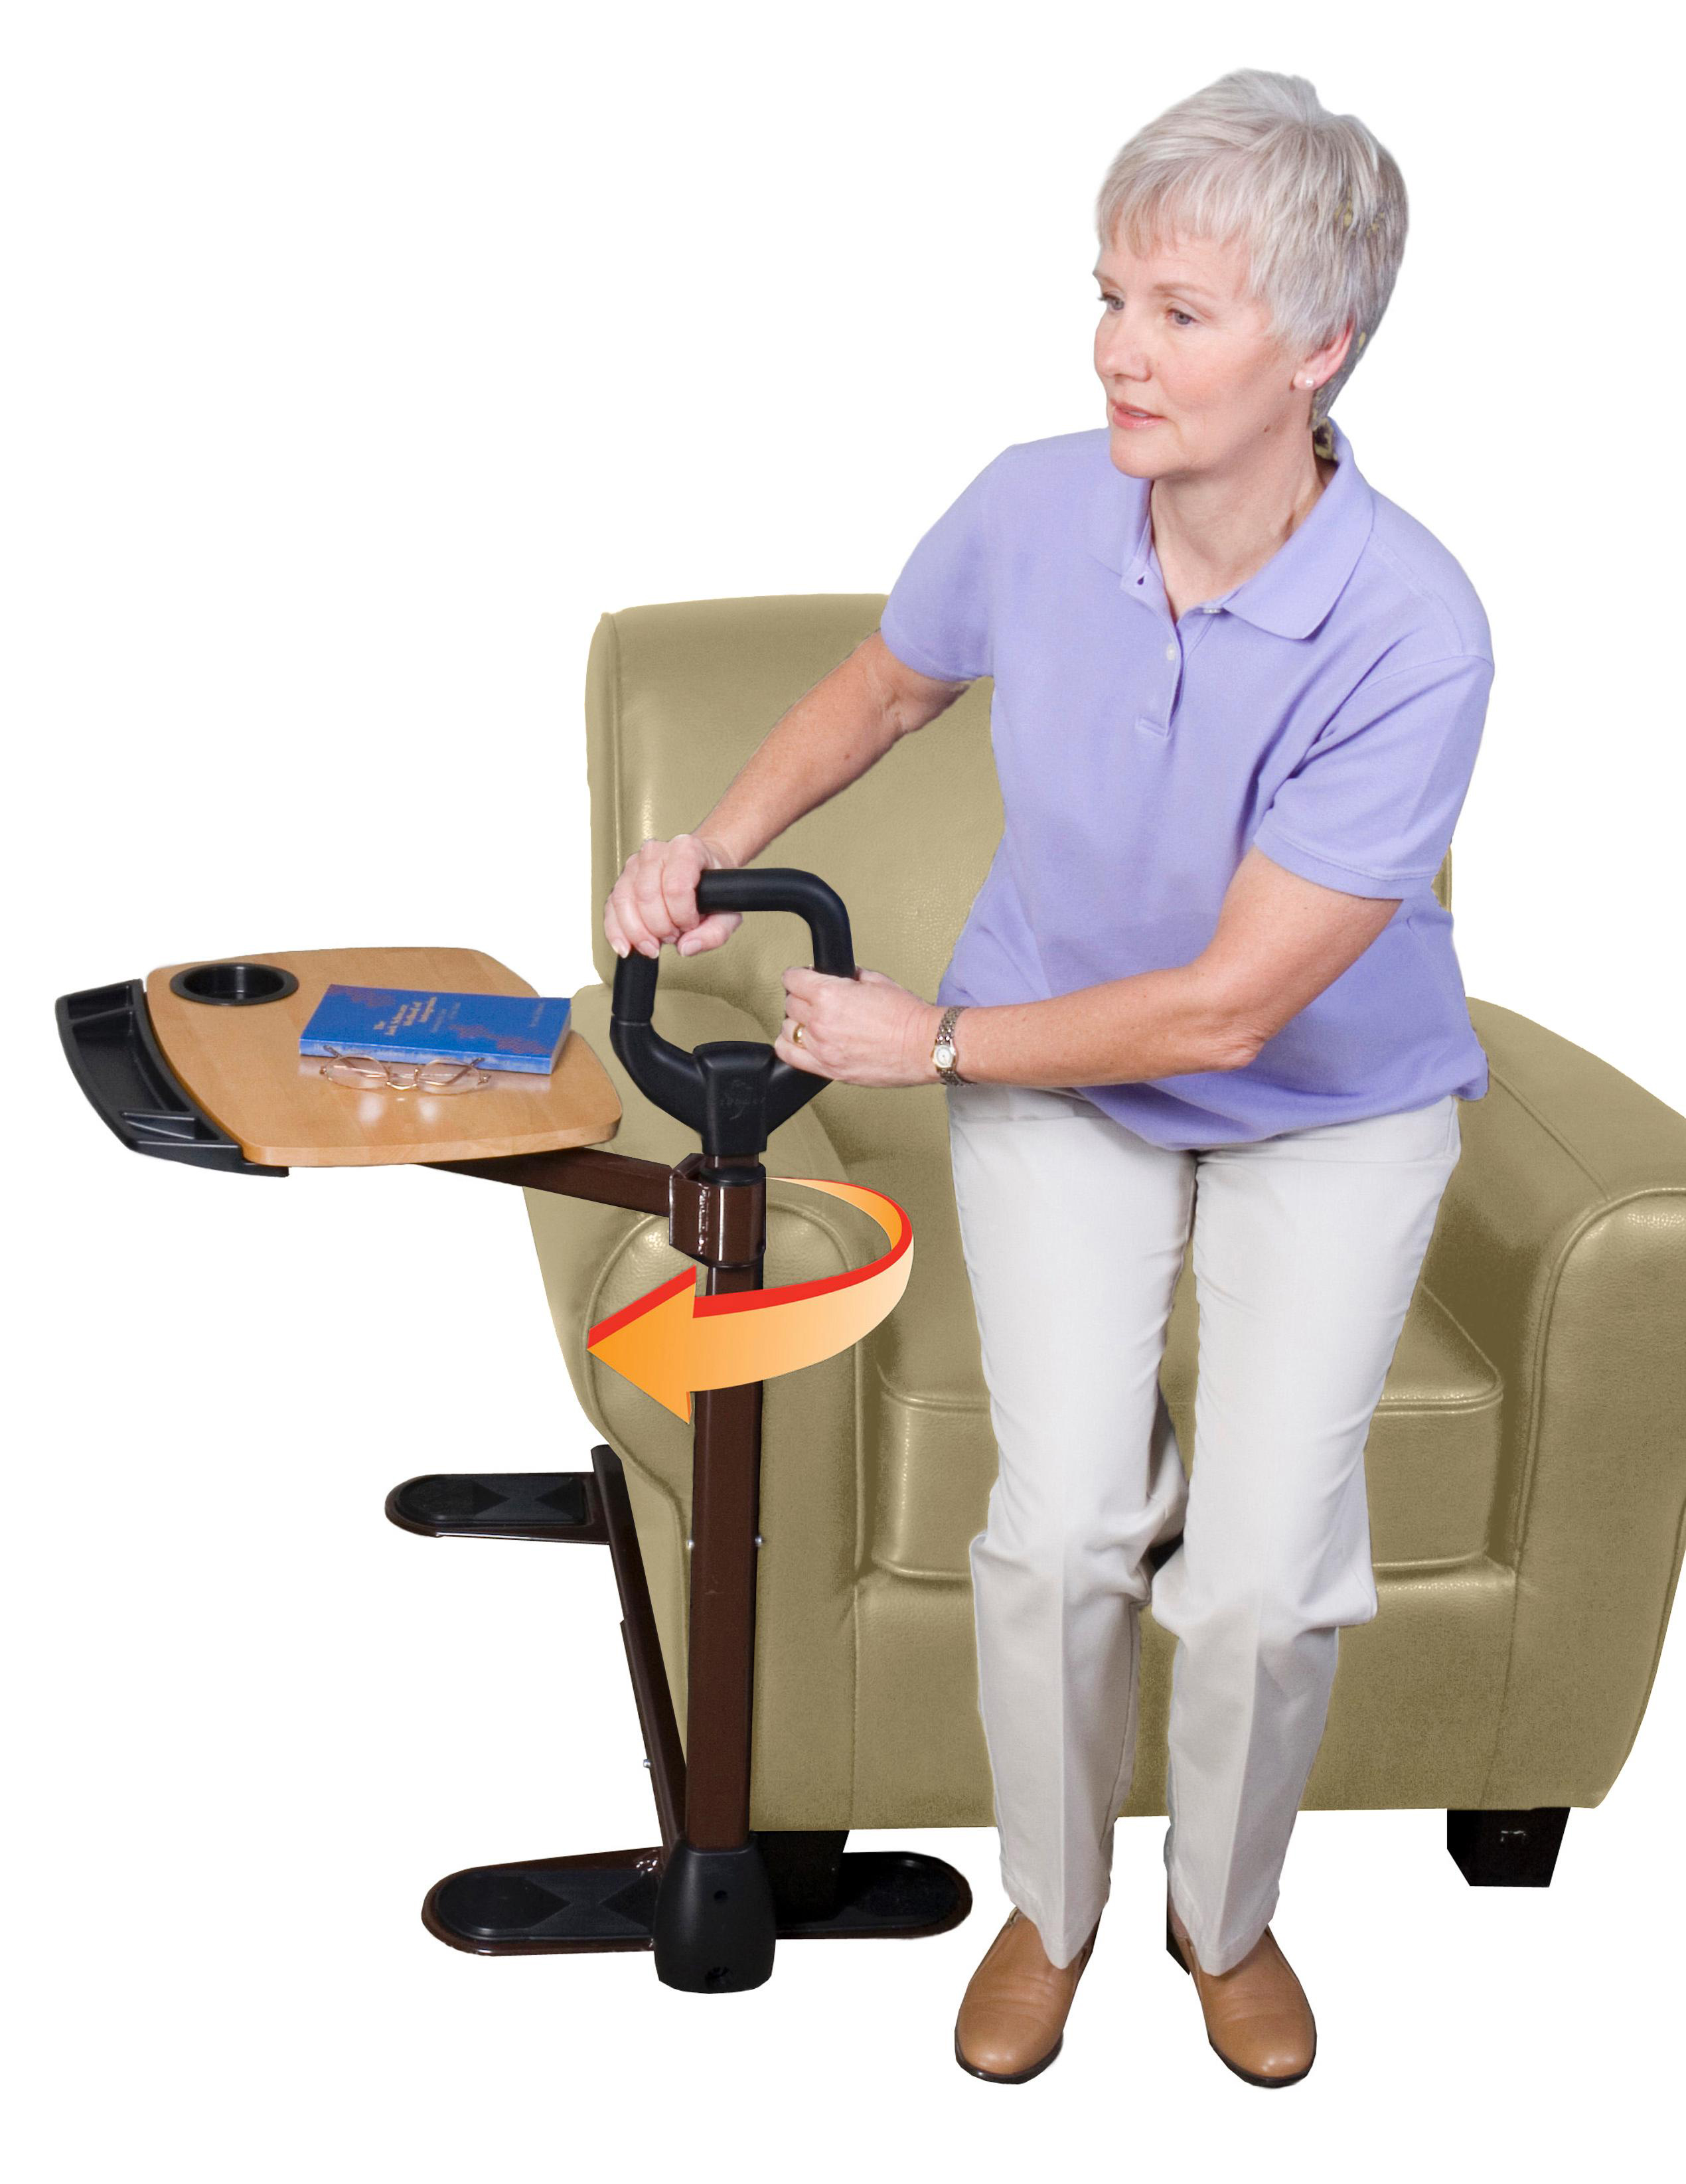 adults standing stand aid adjustable medokare hospital able assist grade elderly life couch com dp bed handle chair amazon mobility universal rails for